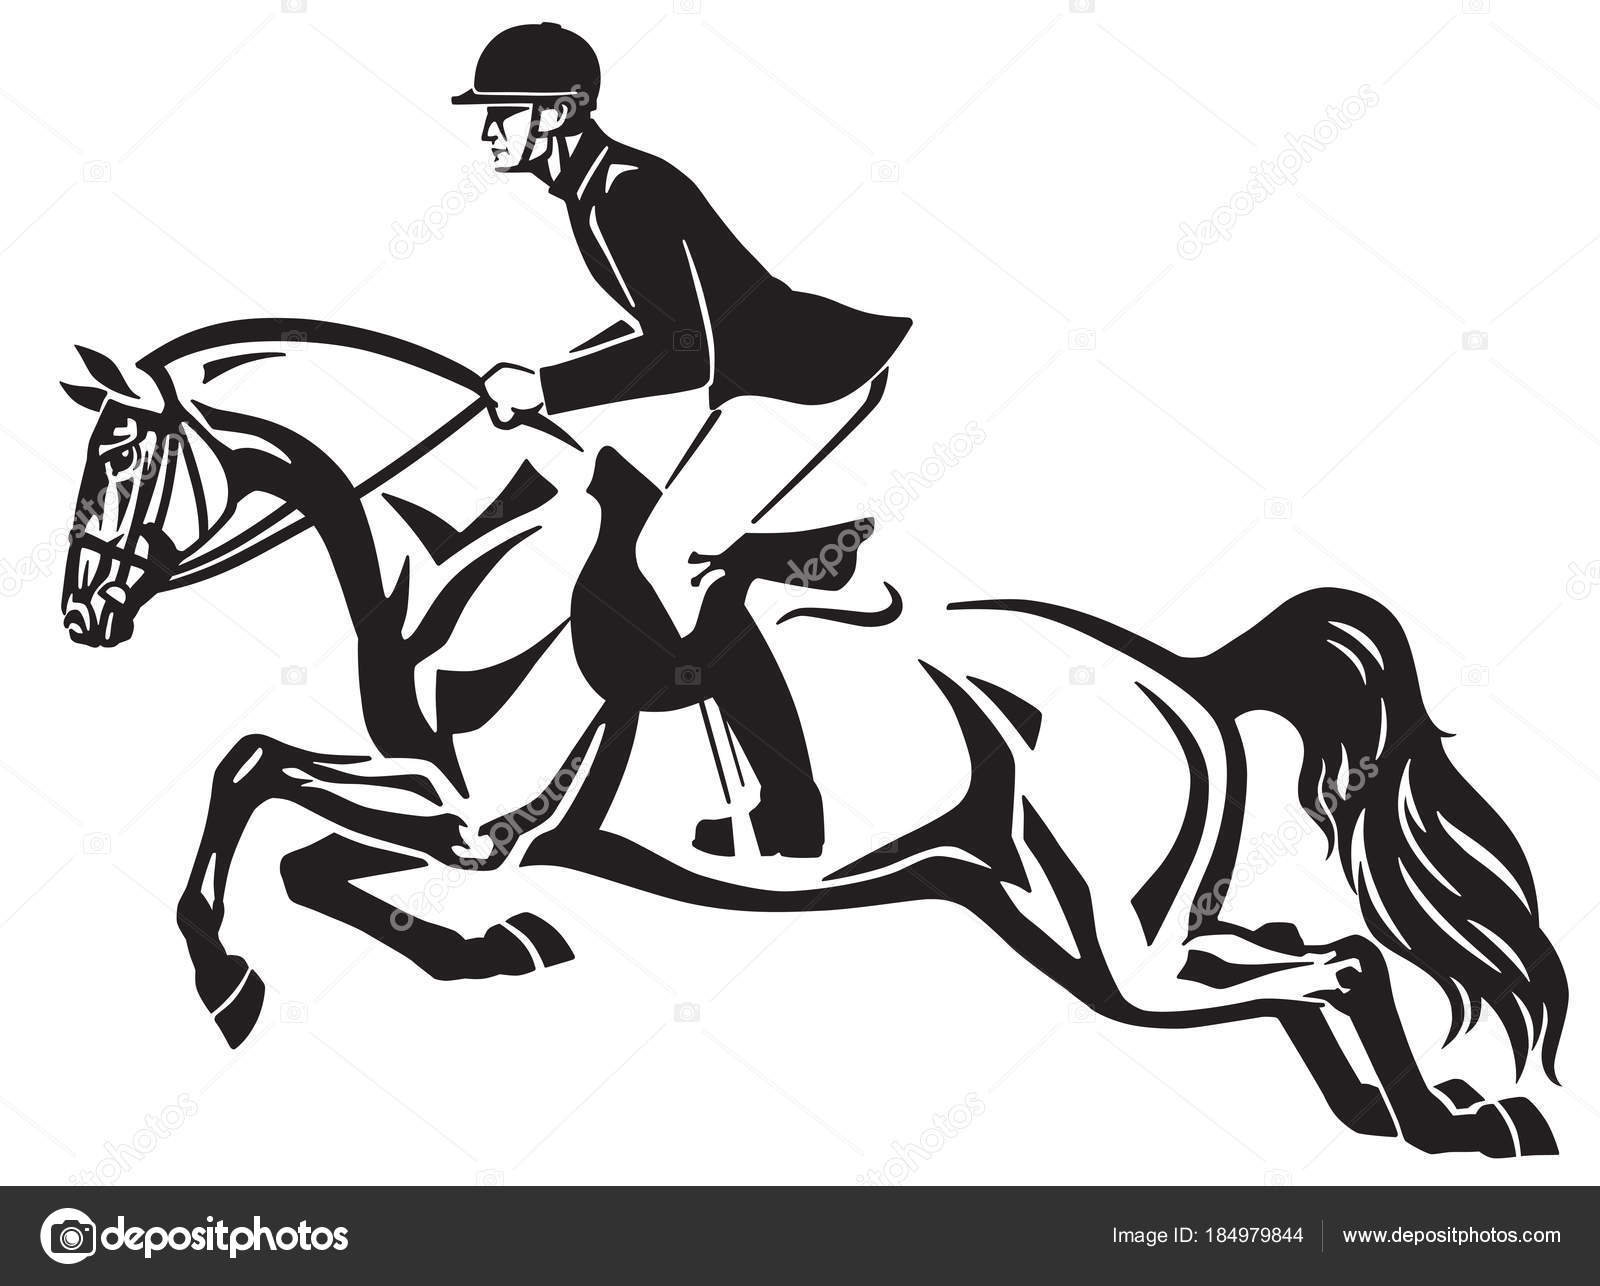 Horse Rider Jumping Fence Equestrian Stadium Showjumping Black White Side Stock Vector C Insima 184979844